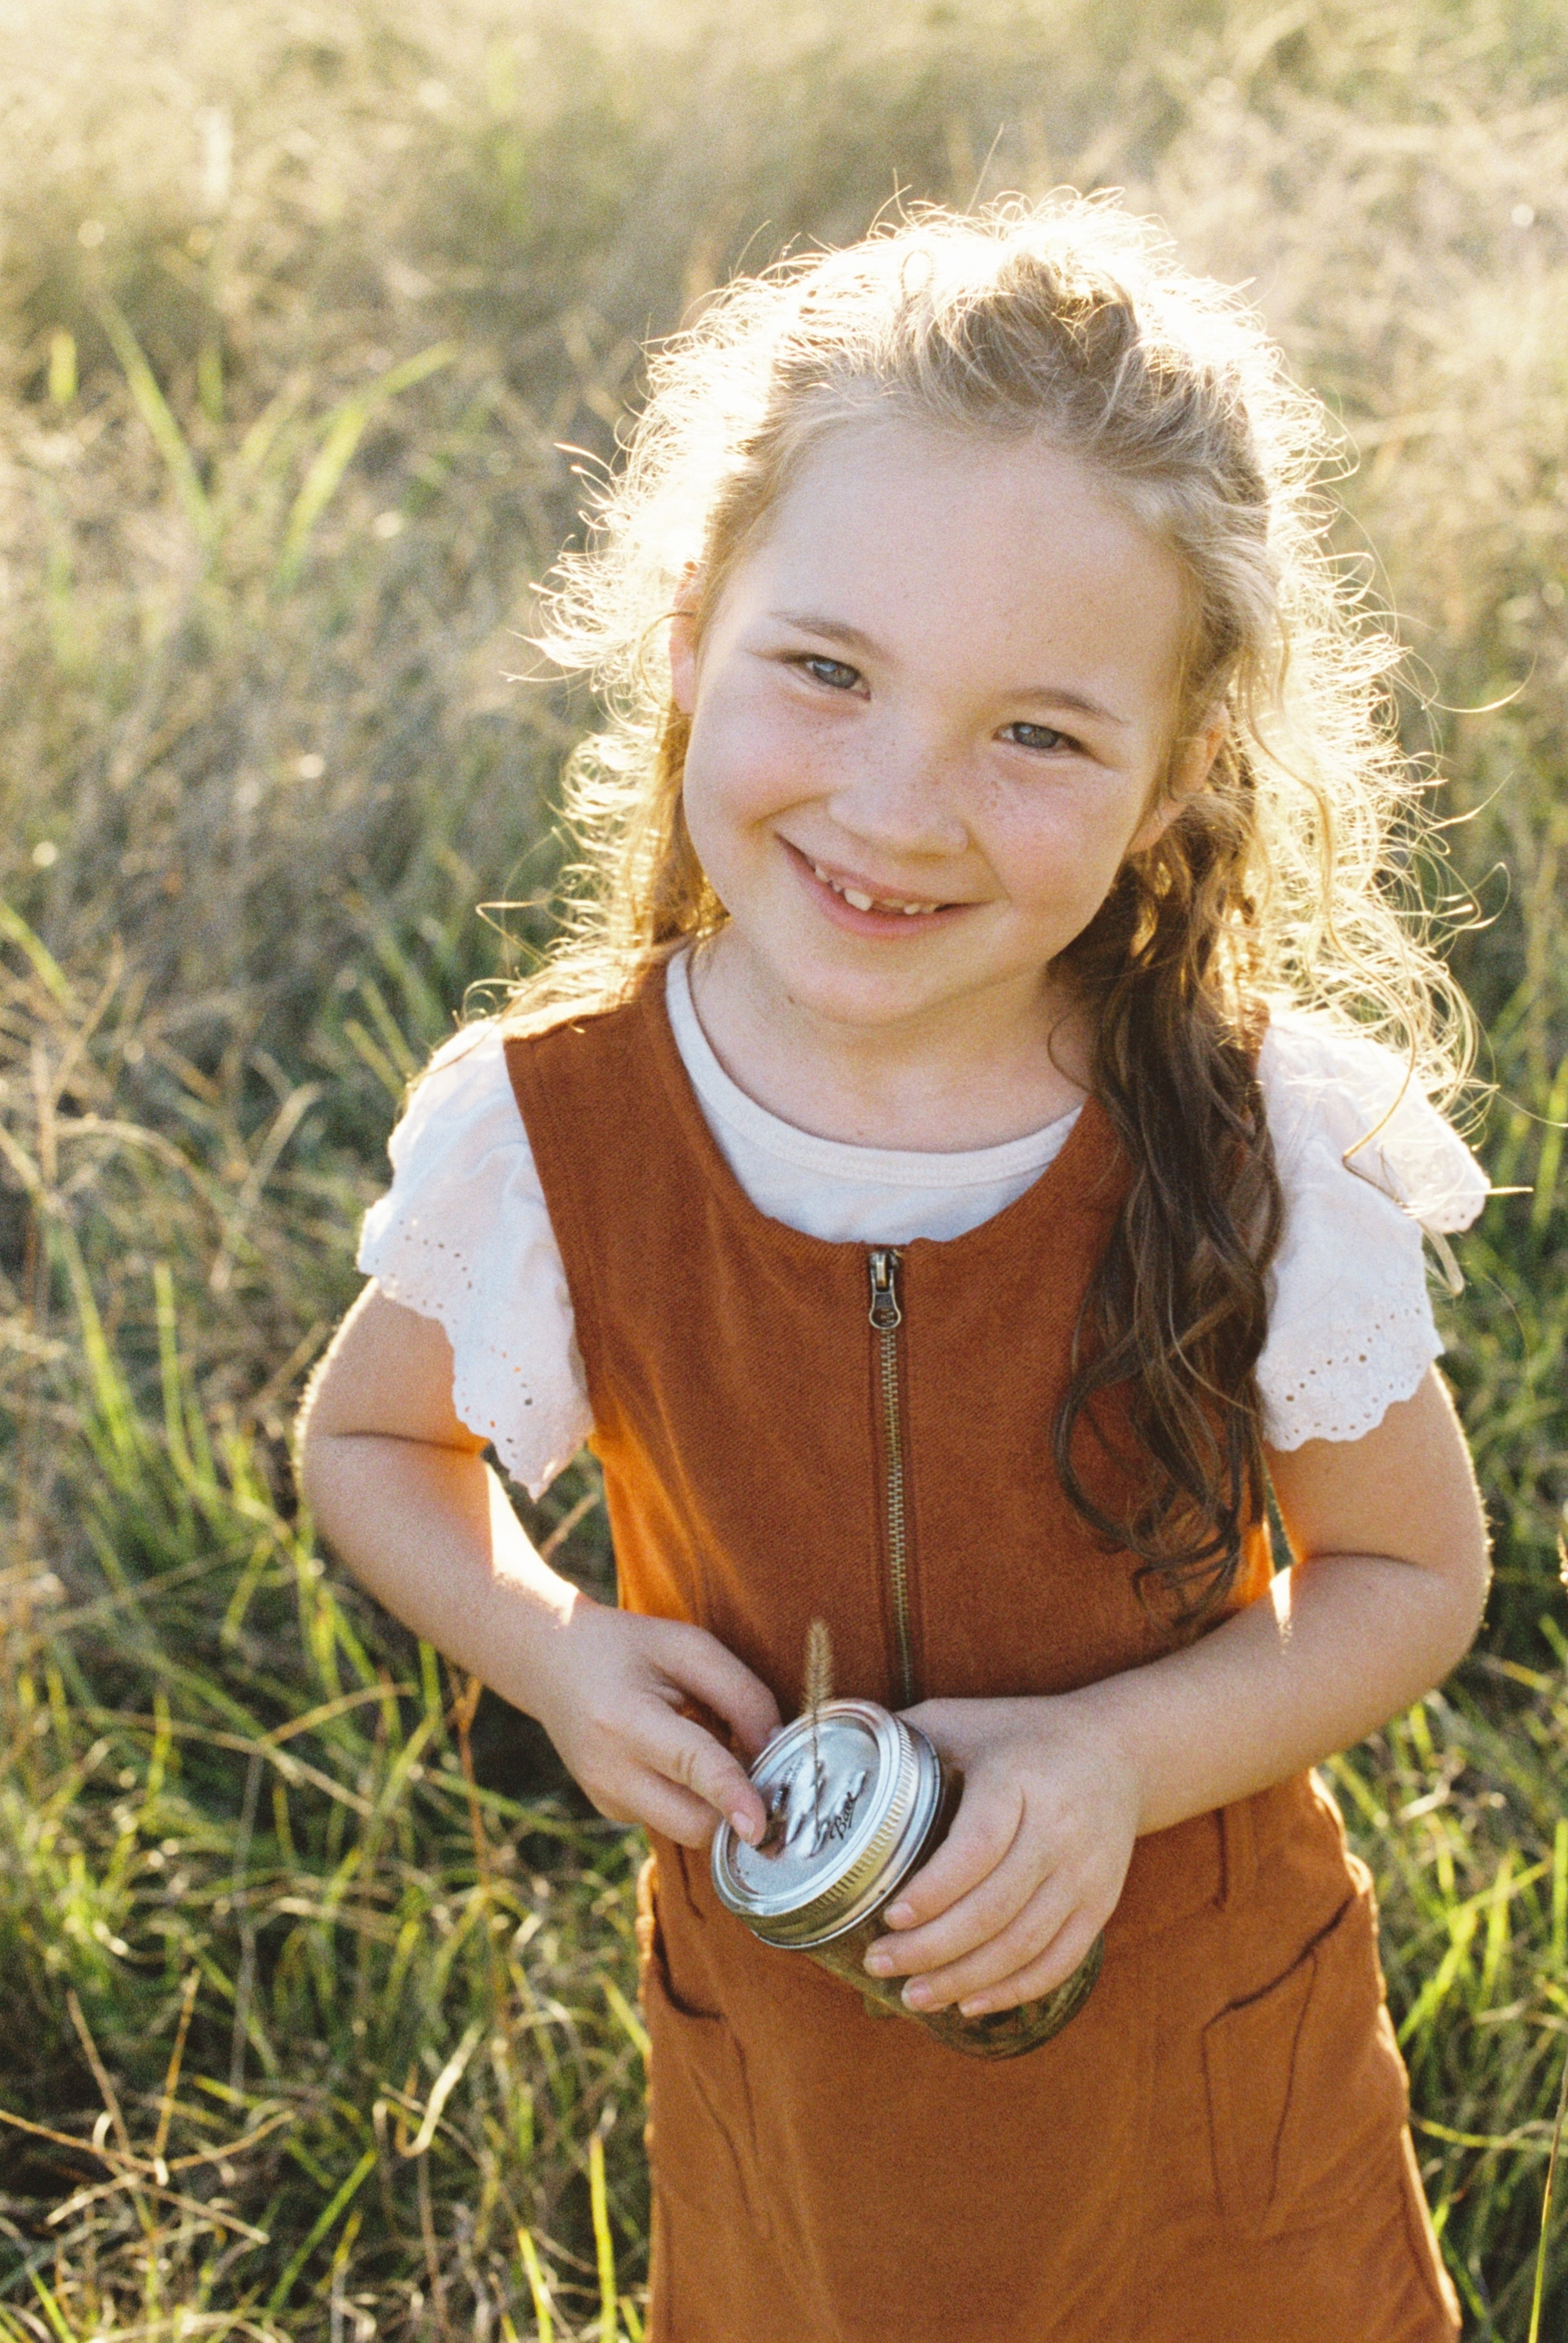 girl-holding-jar-in-field